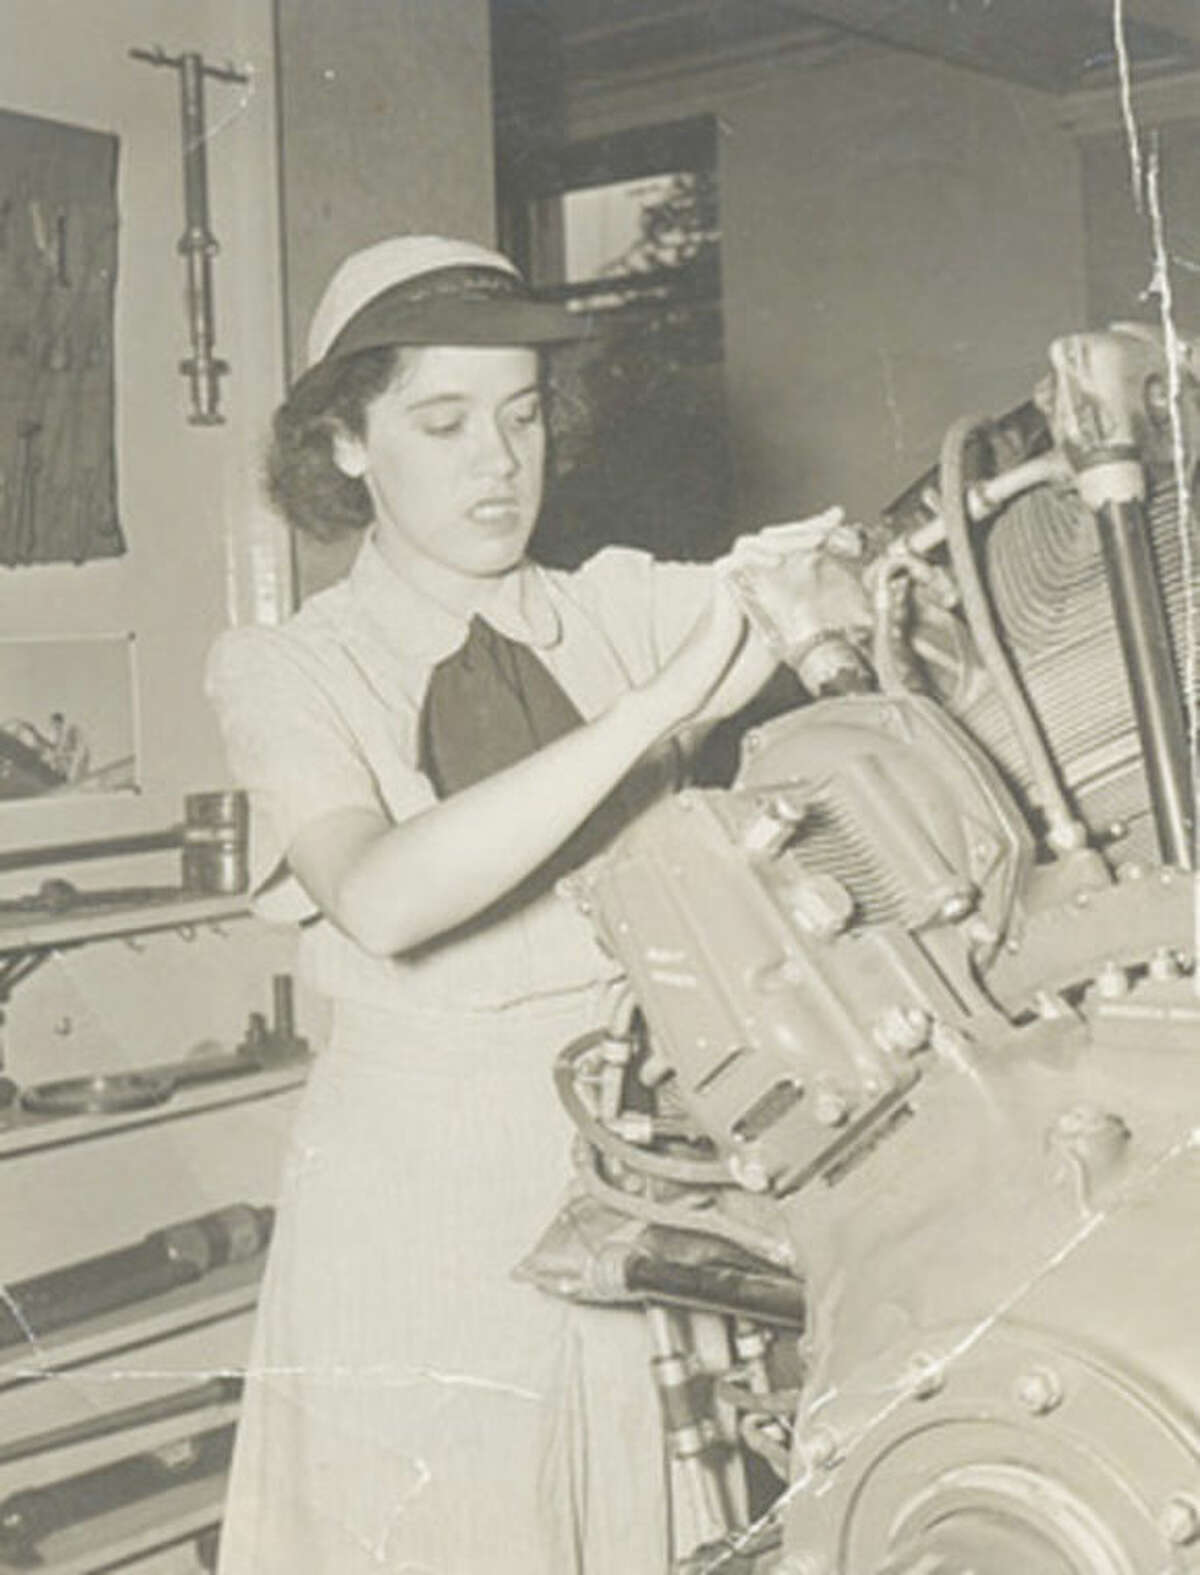 Contributed photo Catherine Tobin Neal posing for a 1944 Navy recruiting poster while serving as a WAVE in Washington D.C.